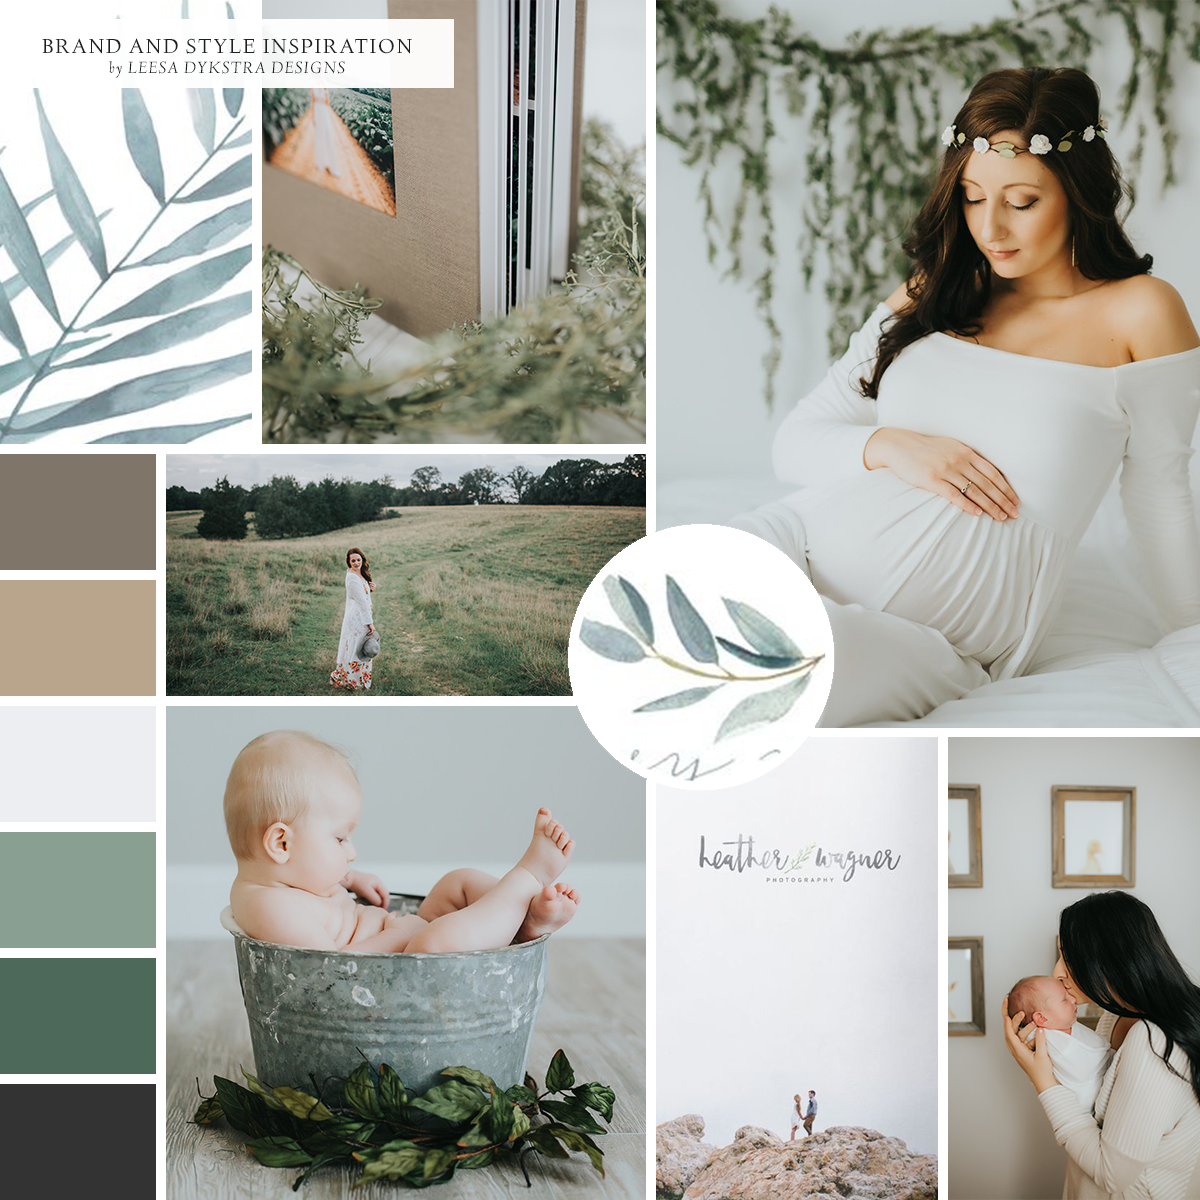 Brand and Style Inspiration for Photography by Mariah by Leesa Dykstra Designs